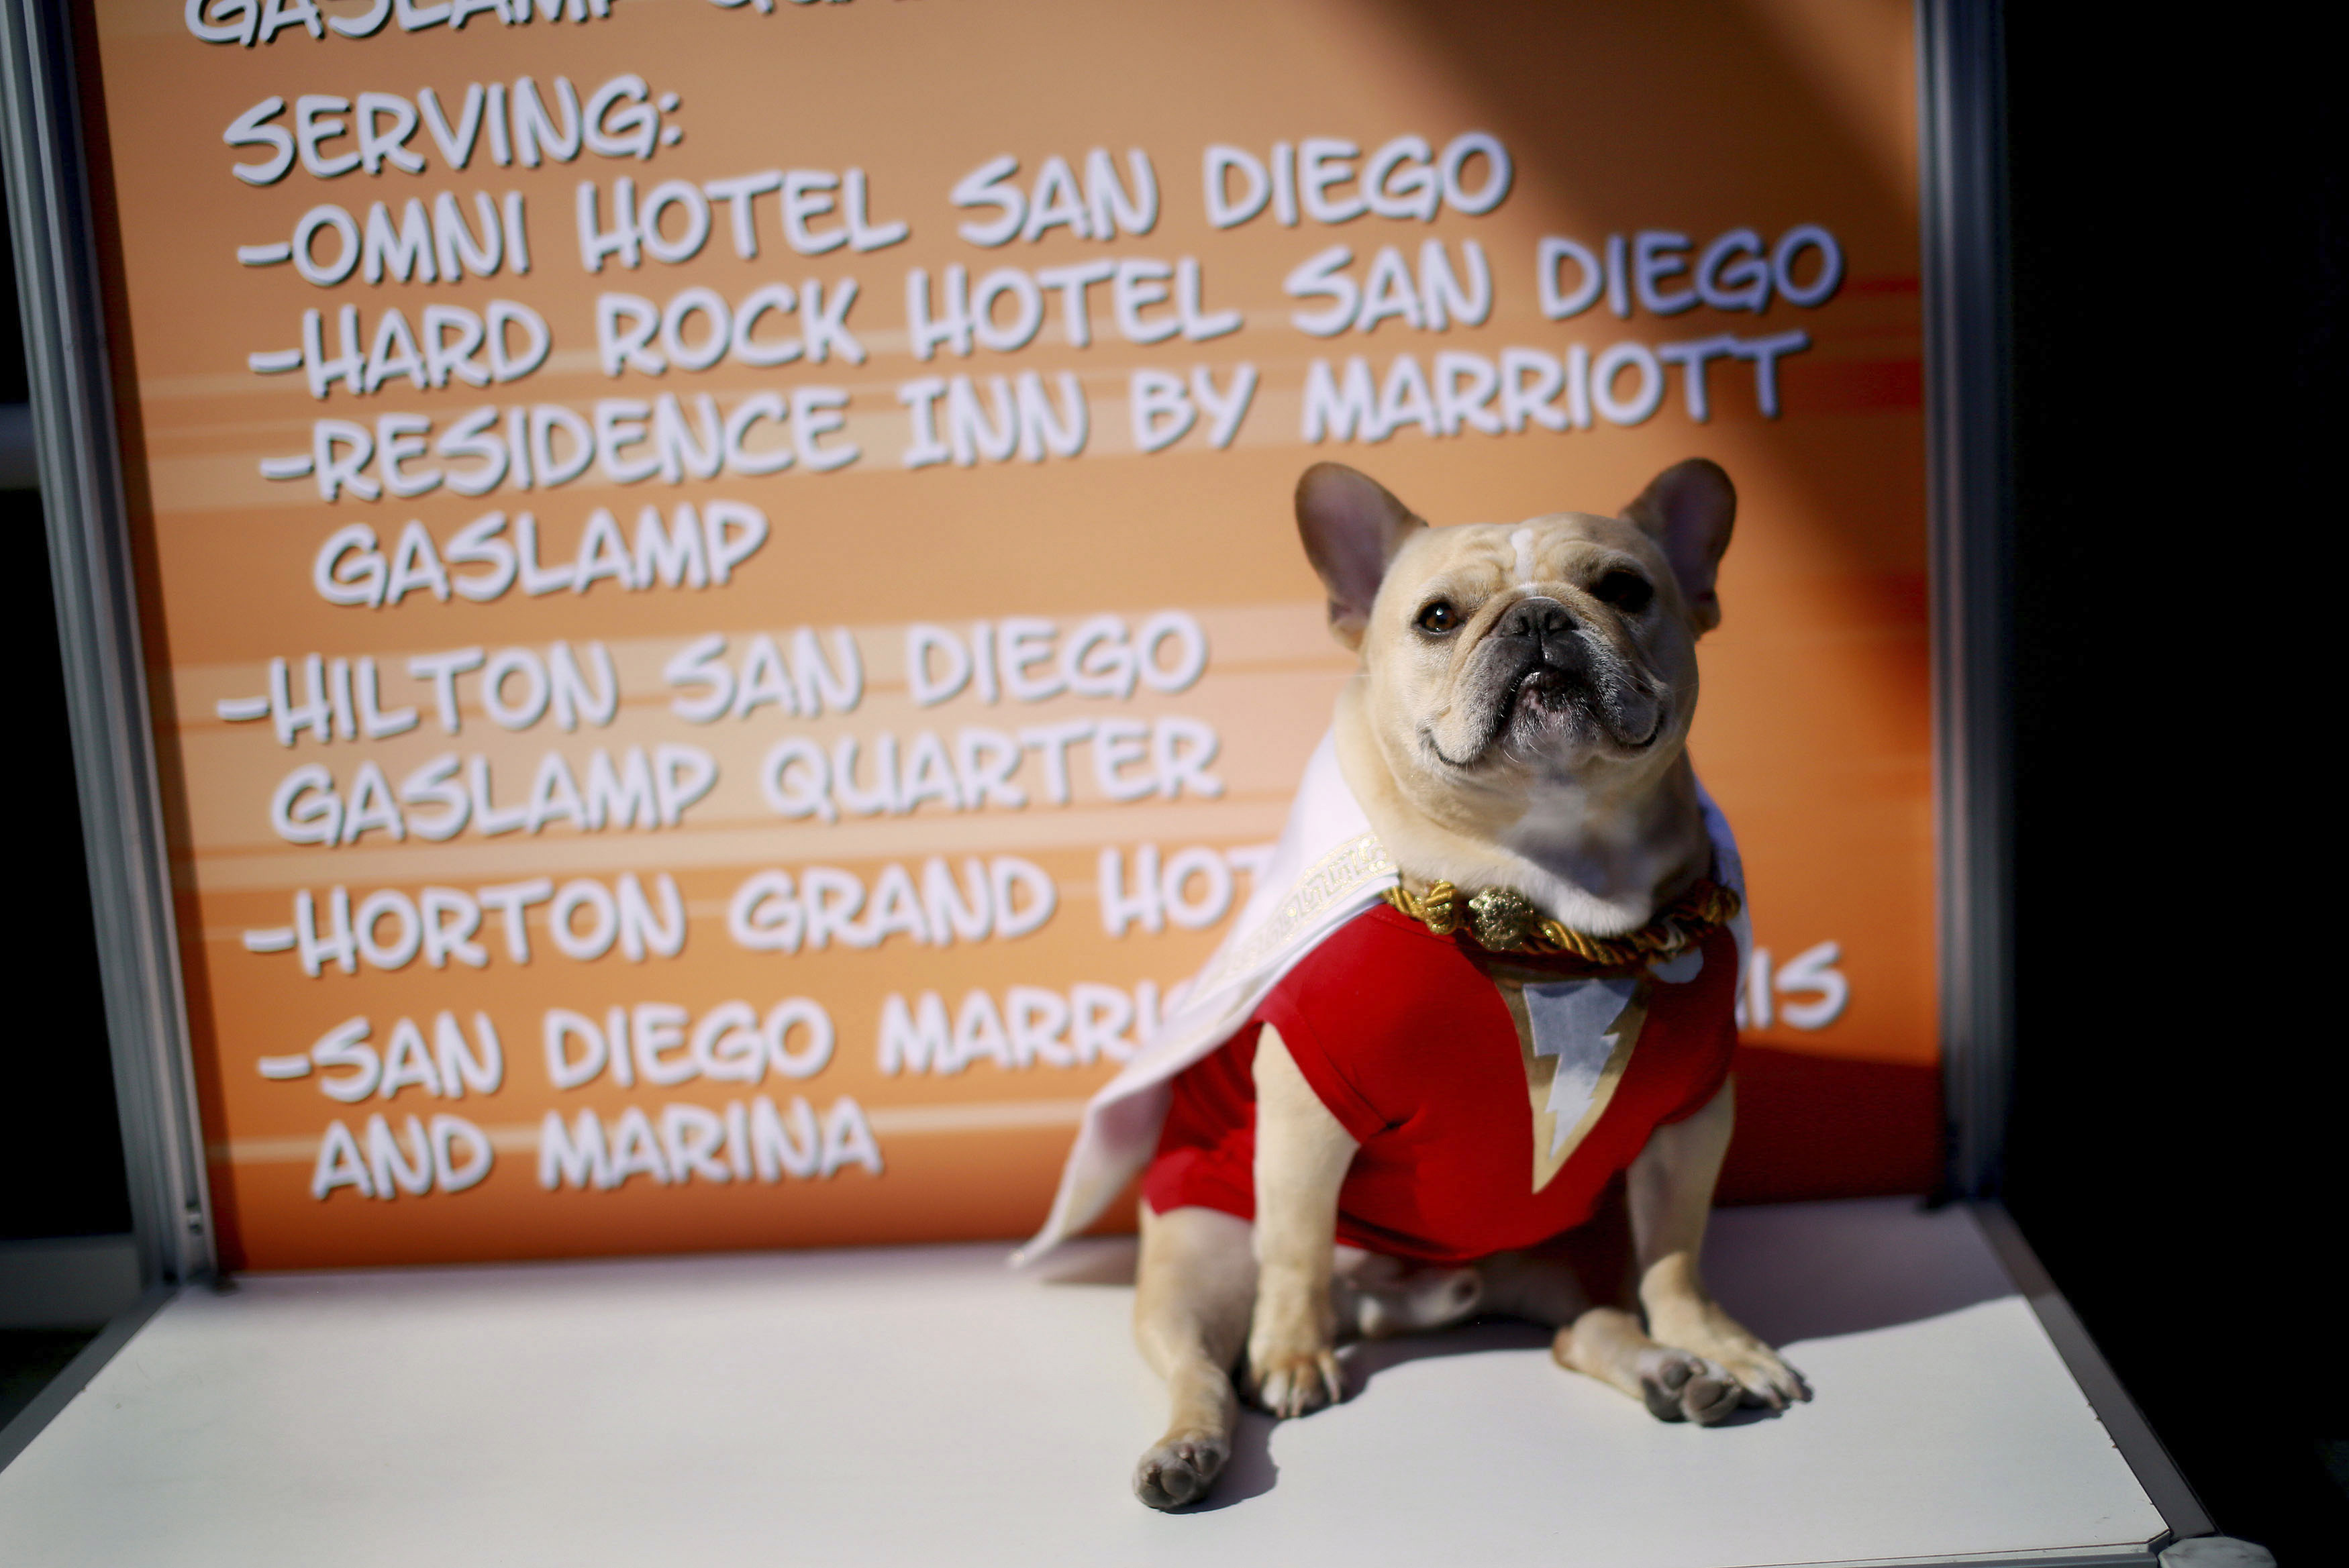 Ollie the French Bulldog, dressed in a  Shazam  costume, sits outside of the San Diego Convention Center during the 2014 Comic-Con International Convention in San Diego, California July 24, 2014.